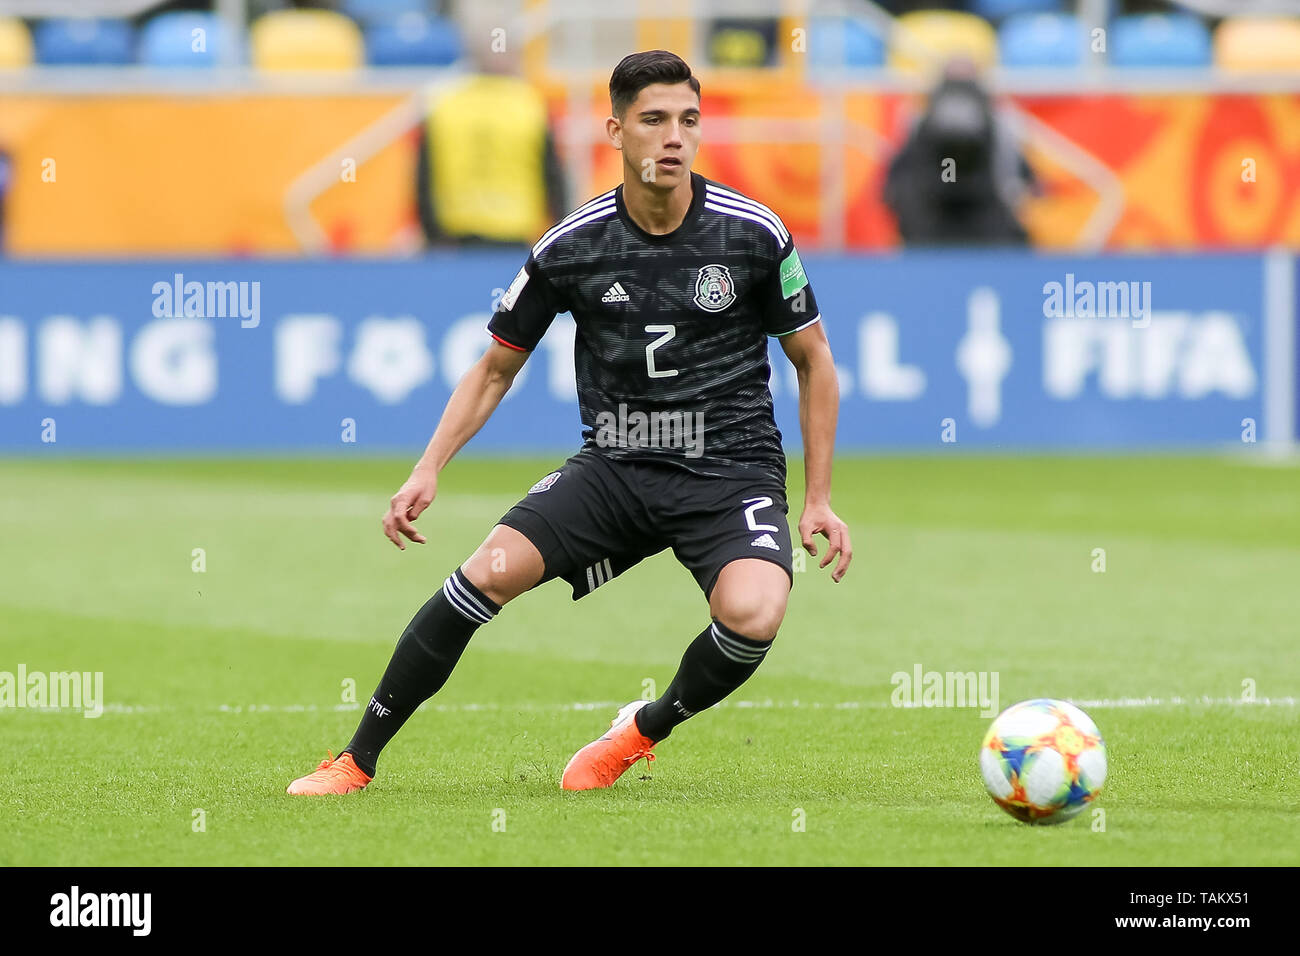 Gdynia Stadium, Gdynia, Poland - 26th May, 2019: Kevin Alvarez from Mexico seen in action during FIFA U-20 World Cup match between Mexico and Japan (GROUP B) in Gdynia. (Final score; Mexico 0:3 Japan) - Stock Image